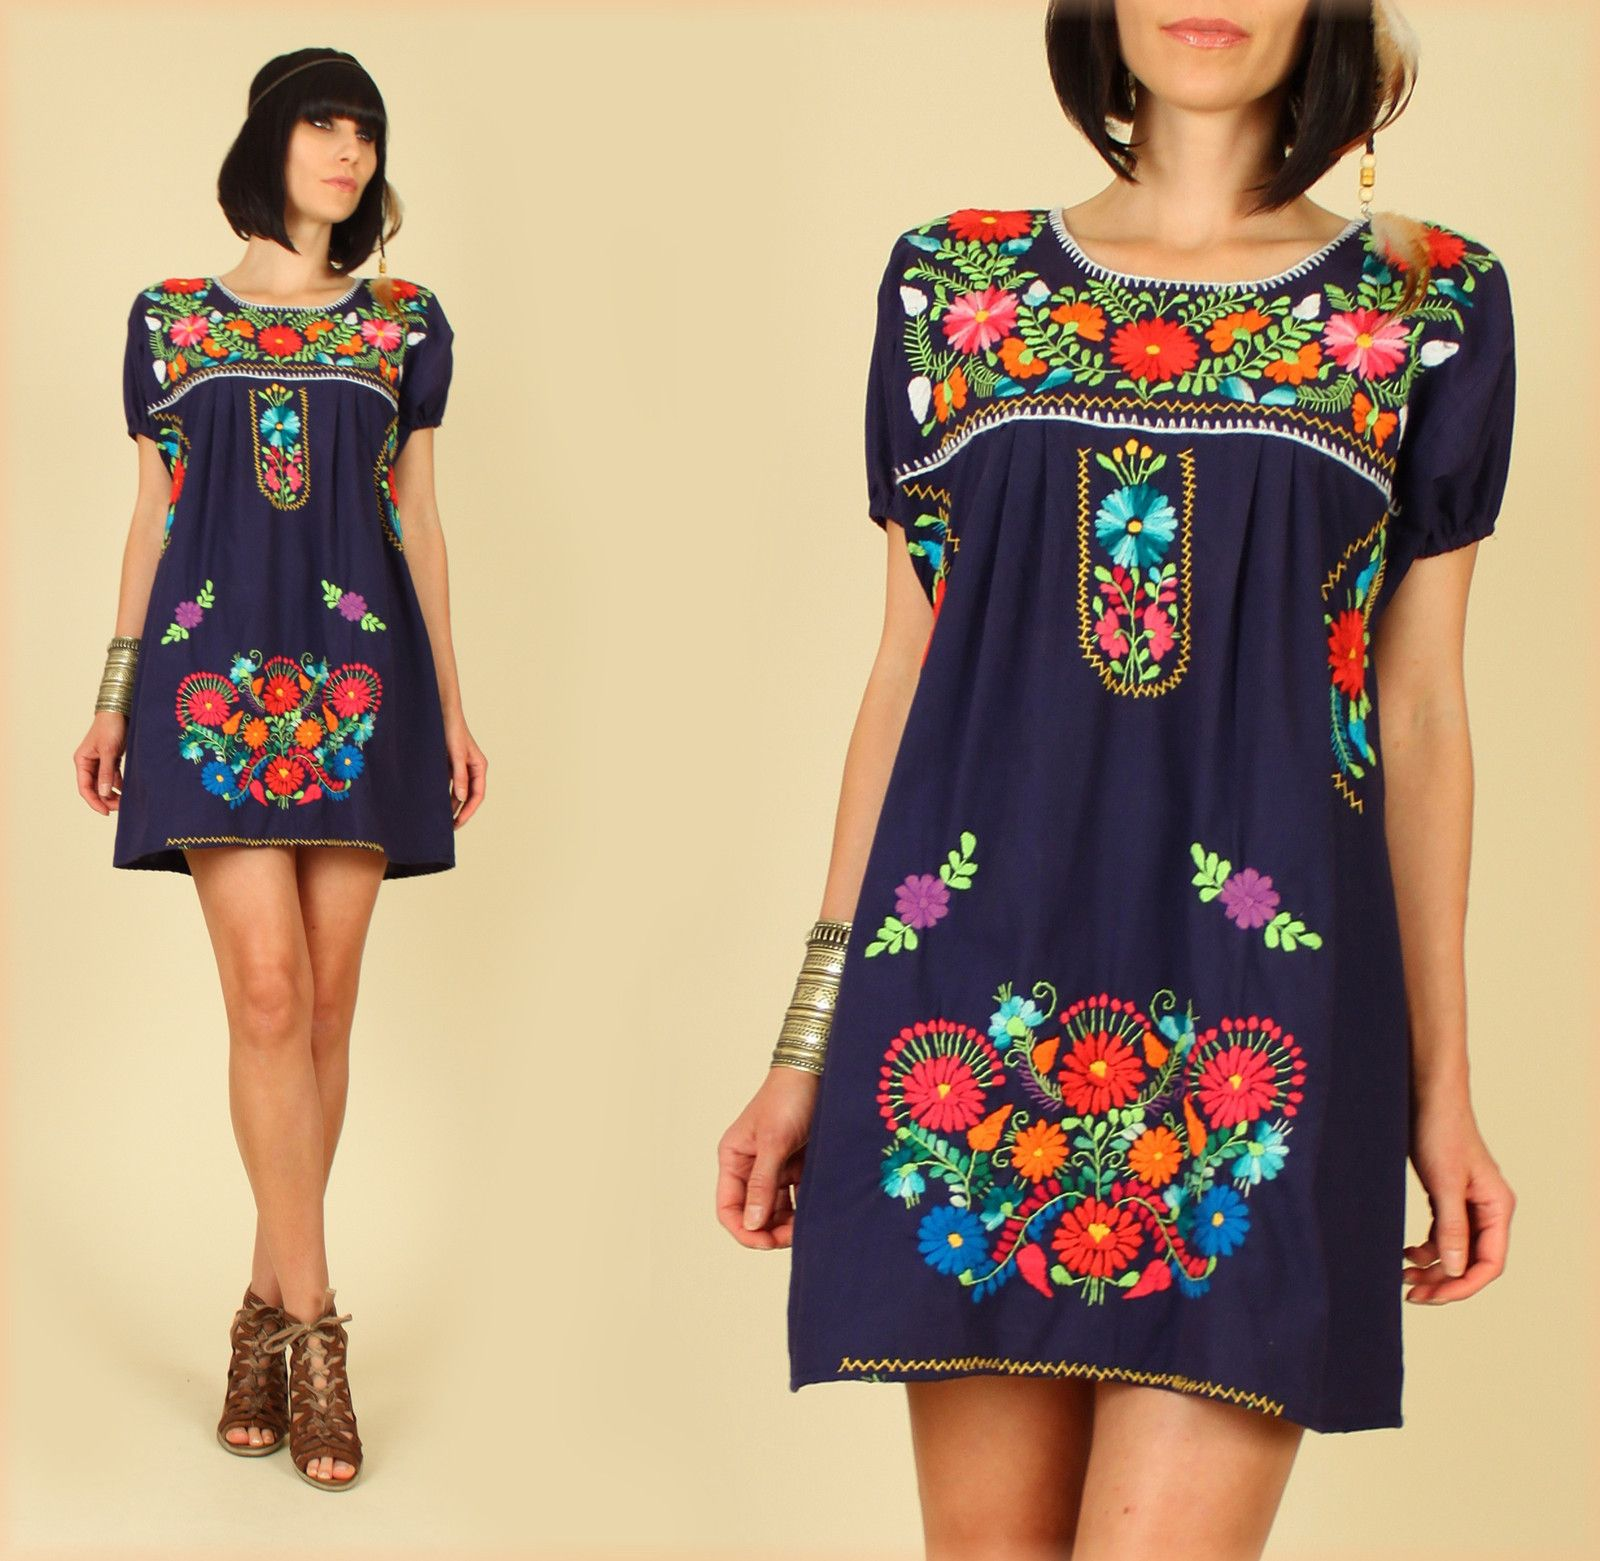 76e3daed4f8 Mouse over image to zoom Sell one like this ViNtAgE 70's Blue Mexican  Floral Embroidered MiNi Dress HiPPiE BoHo